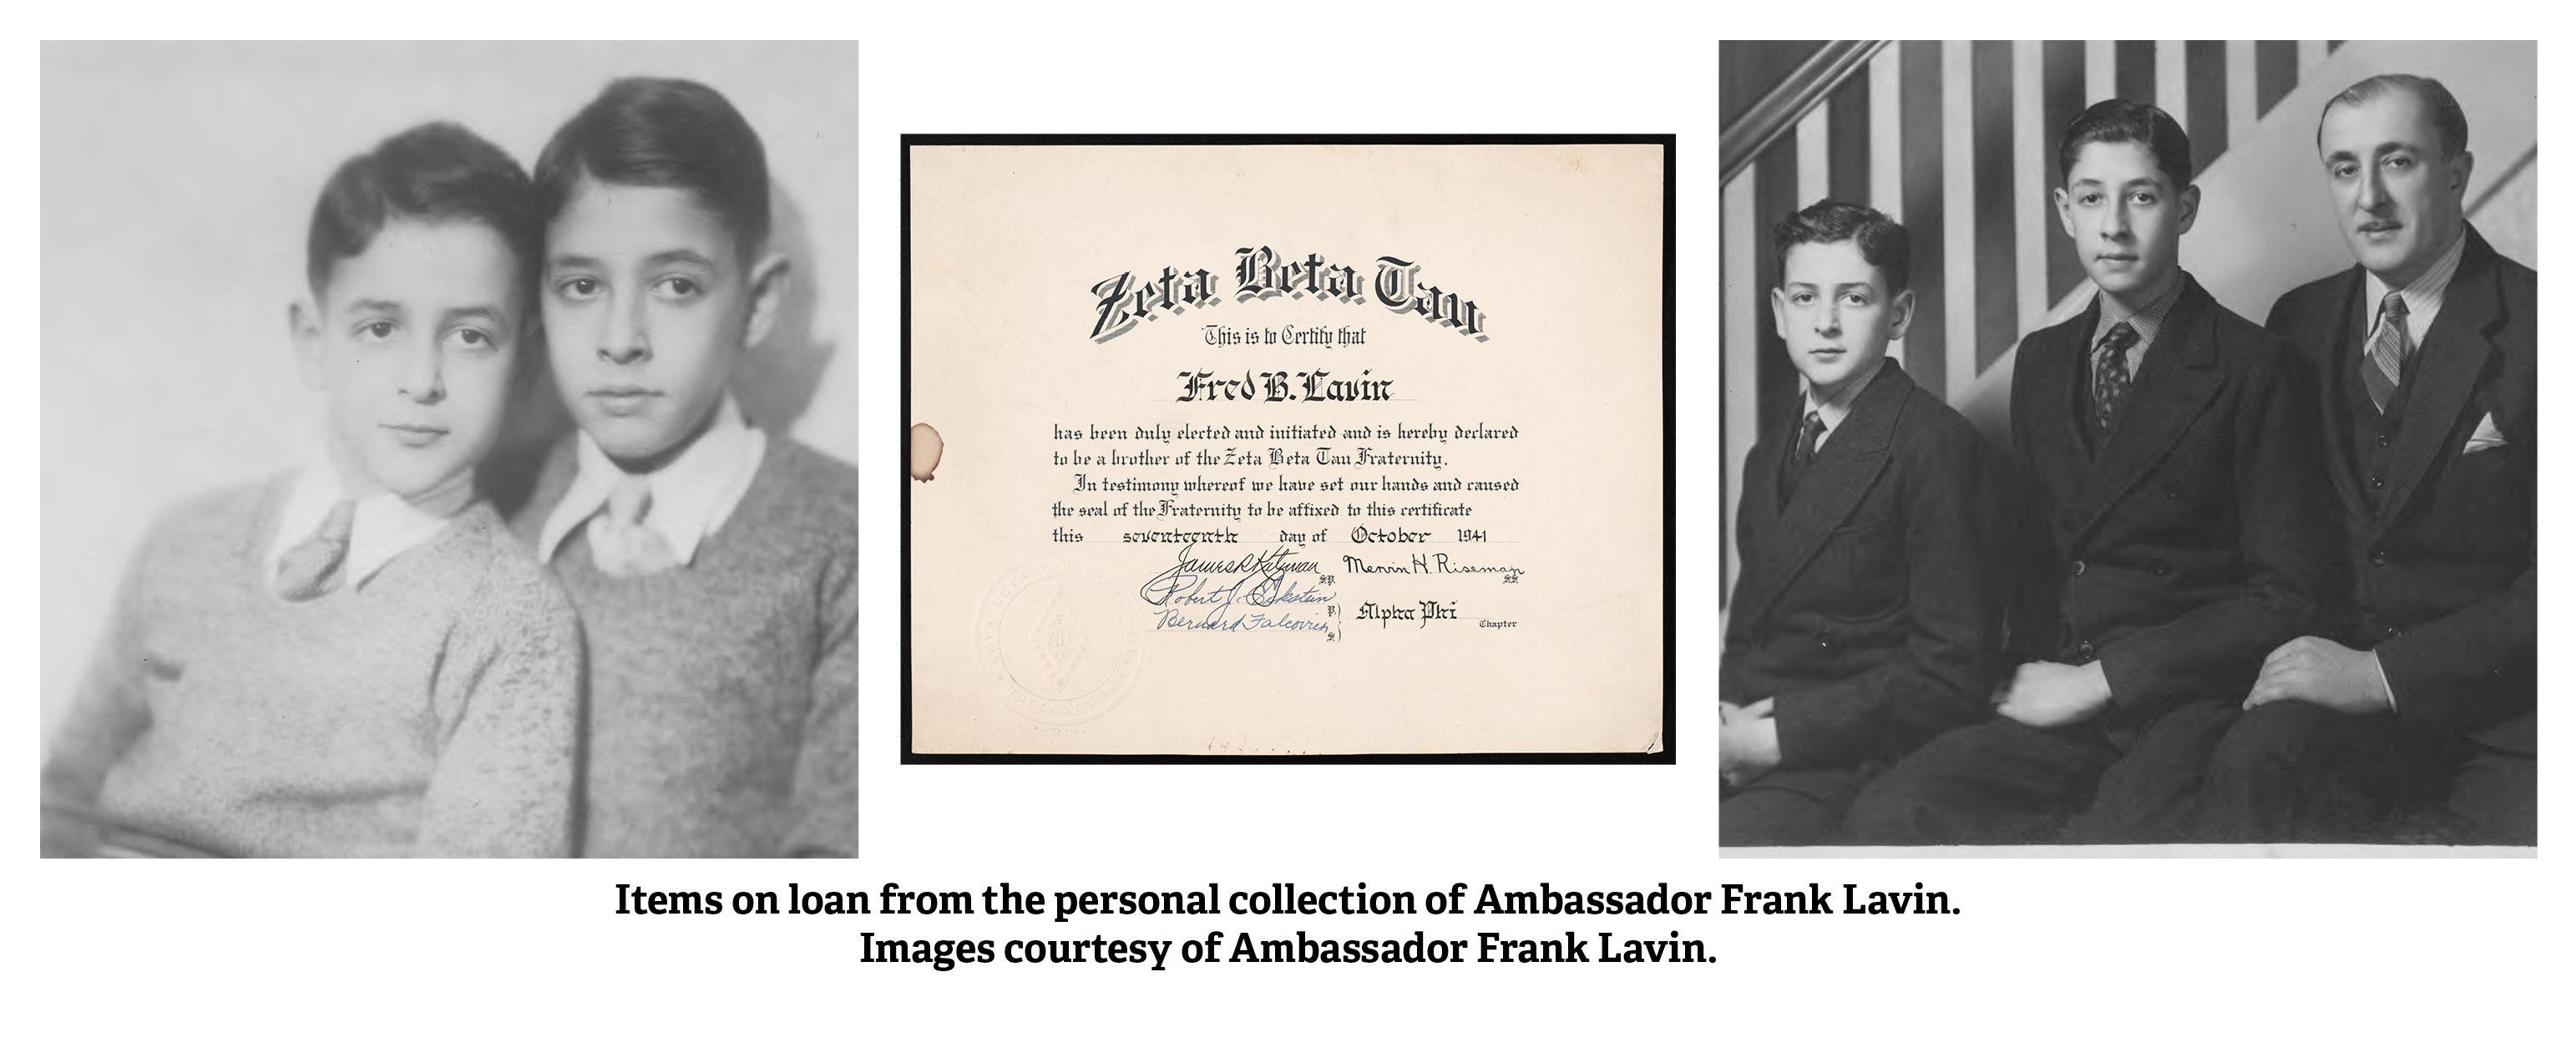 Three Images 1. Fred Lavin (right) and Carl Lavin, 1930, 2. Zeta Beta Tau Fraternity certificate and 3. Fred Lavin (middle), Carl Lavin and Leo Lavin